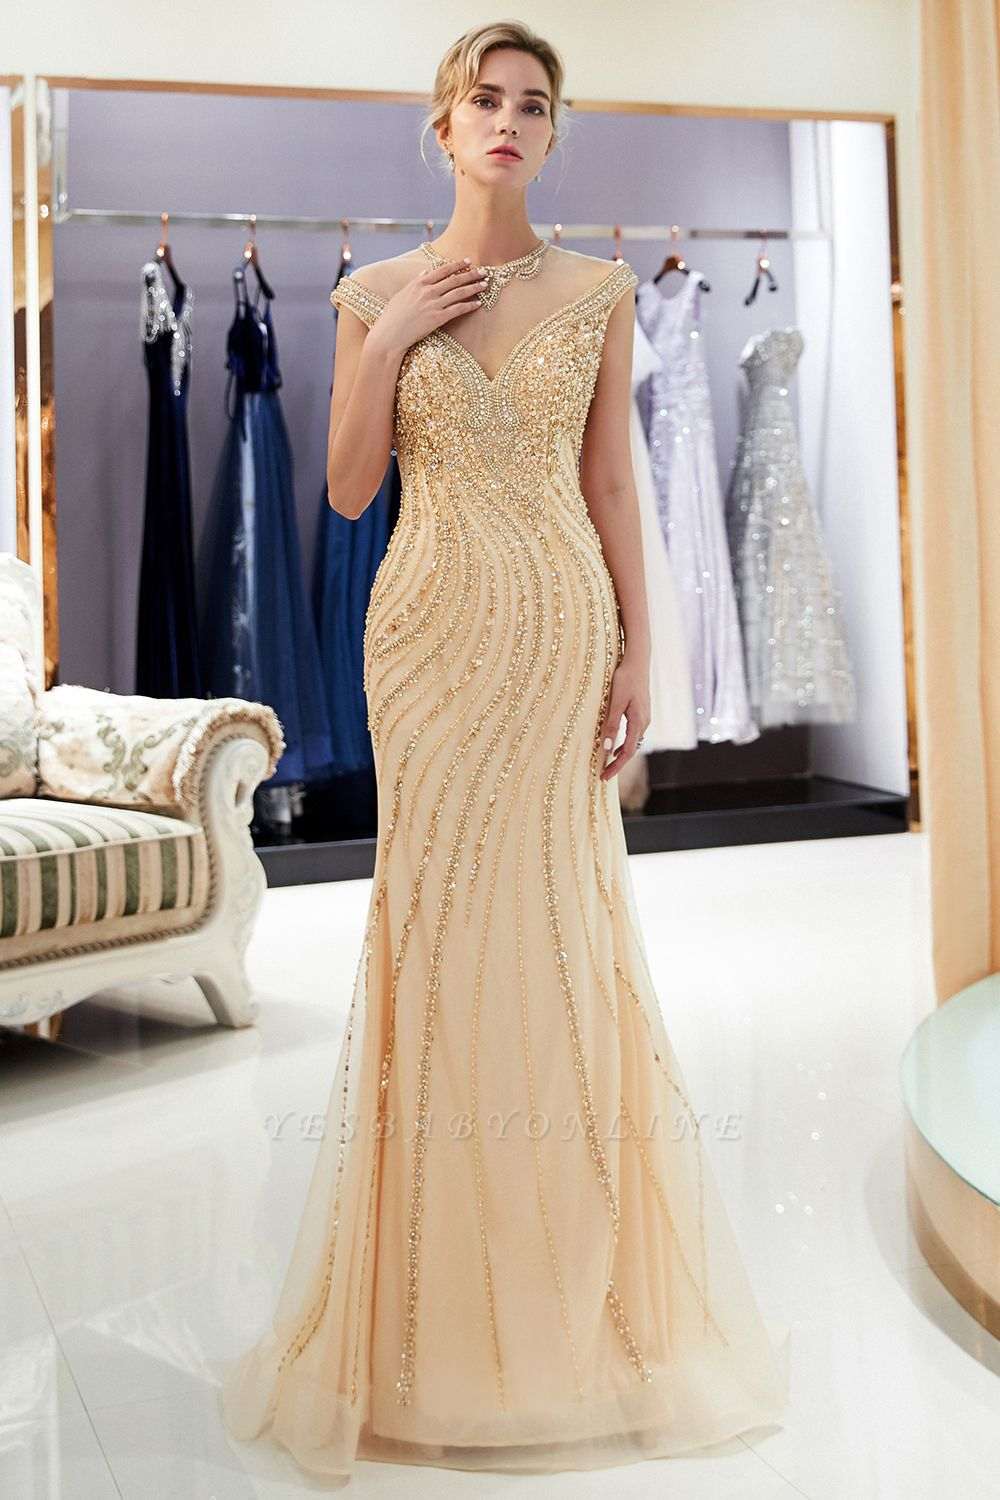 Glamorous Mermaid Off-the-Shoulder Prom Dress | 2019 Long Prom Dress with Crystals